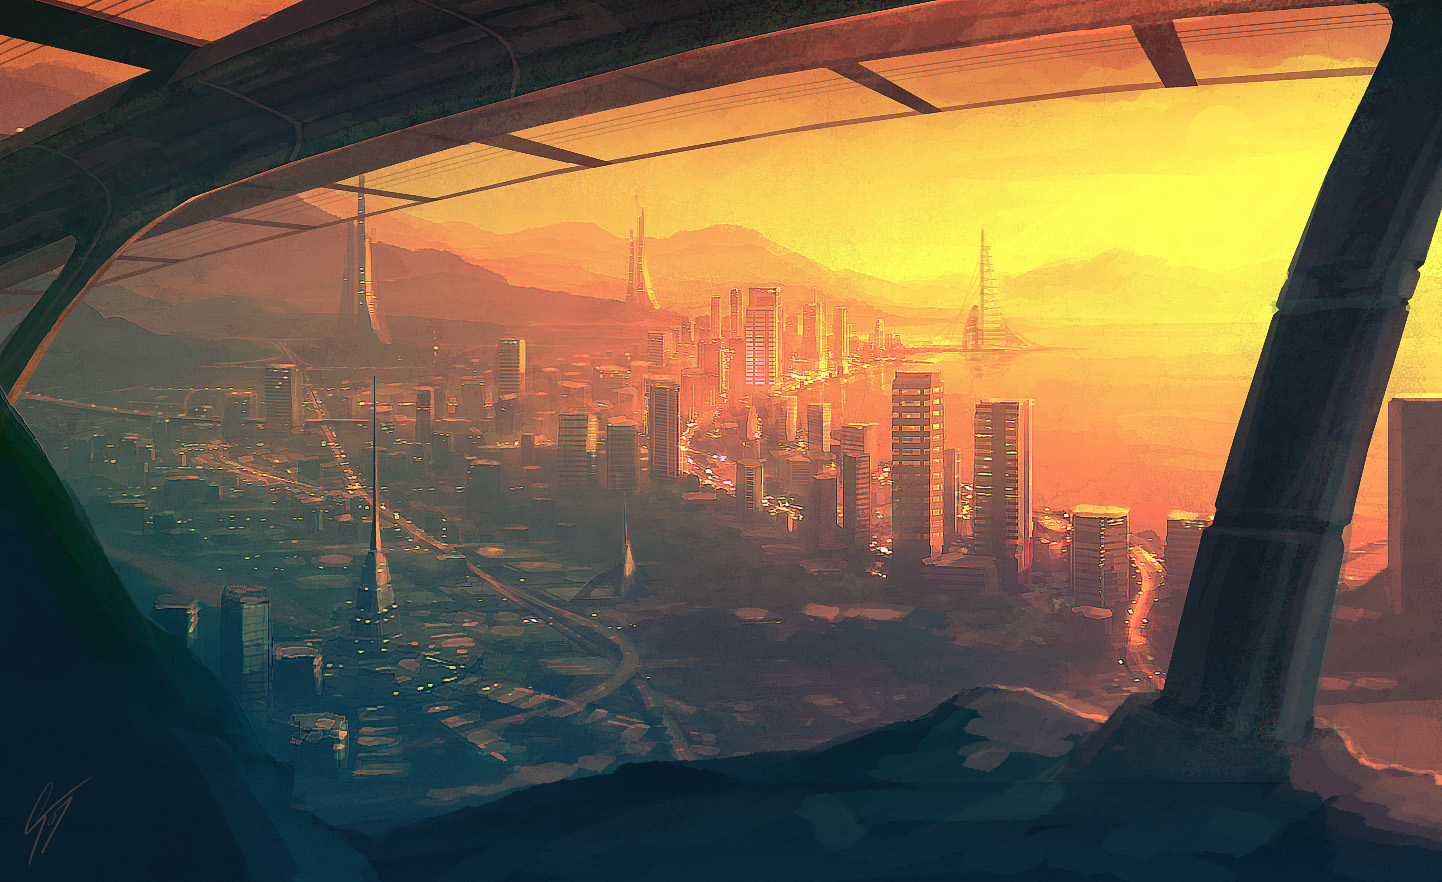 Speedpaint___Future_City_by_ANTIFAN_REAL.jpg